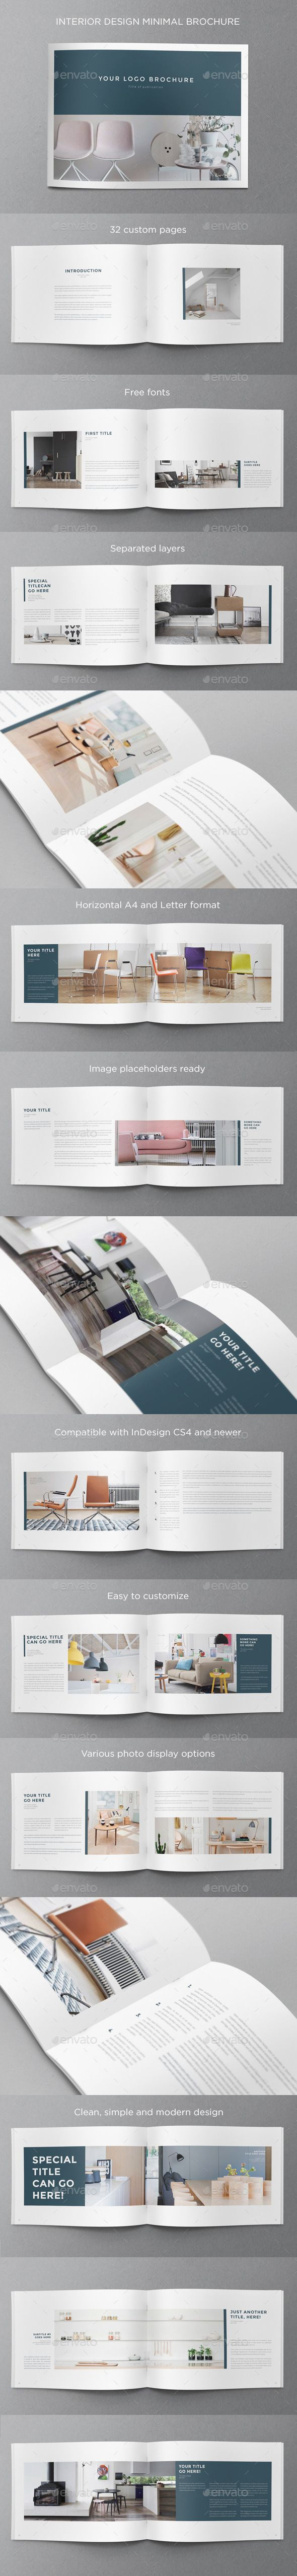 Interior Design Minimal Brochure — InDesign INDD #modern #minimal • Available here → https://graphicriver.net/item/interior-design-minimal-brochure/11243000?ref=pxcr